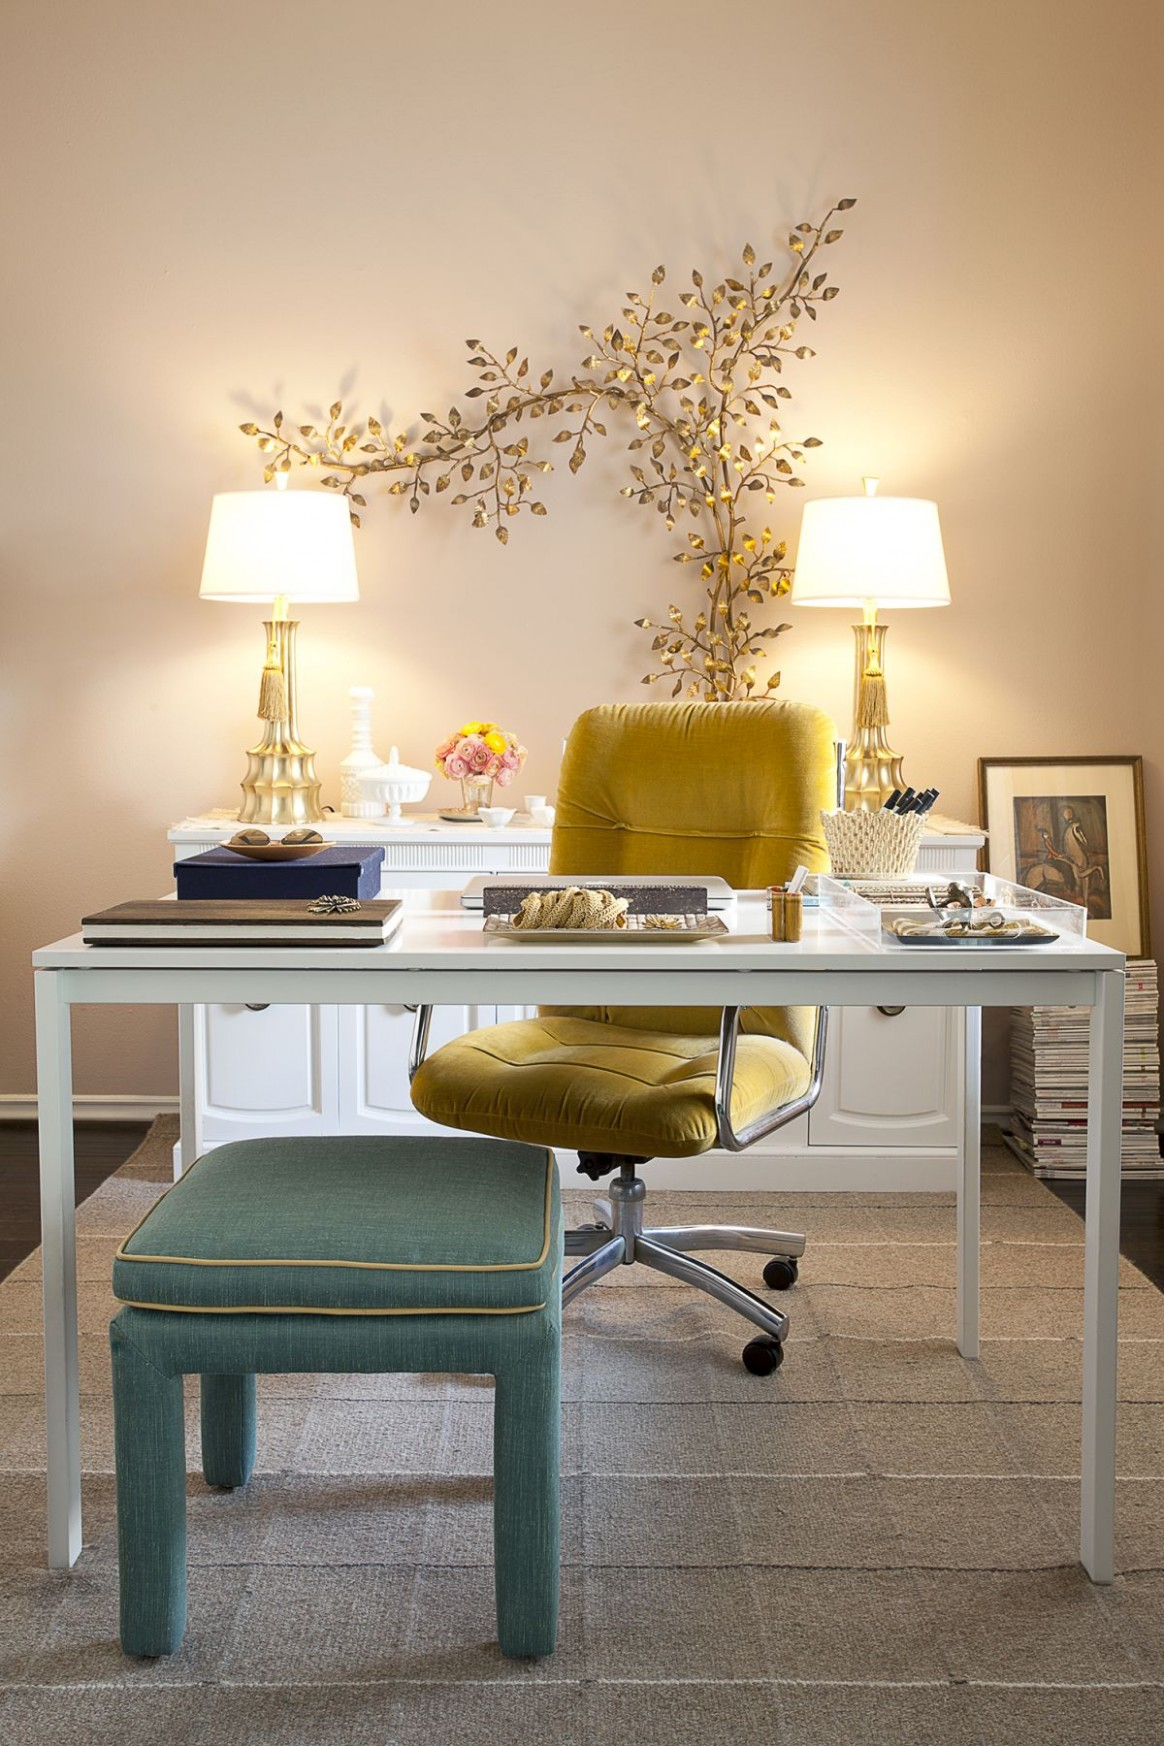 10 Wall Decor Ideas to Take to The Office - Wall Decor Ideas Office